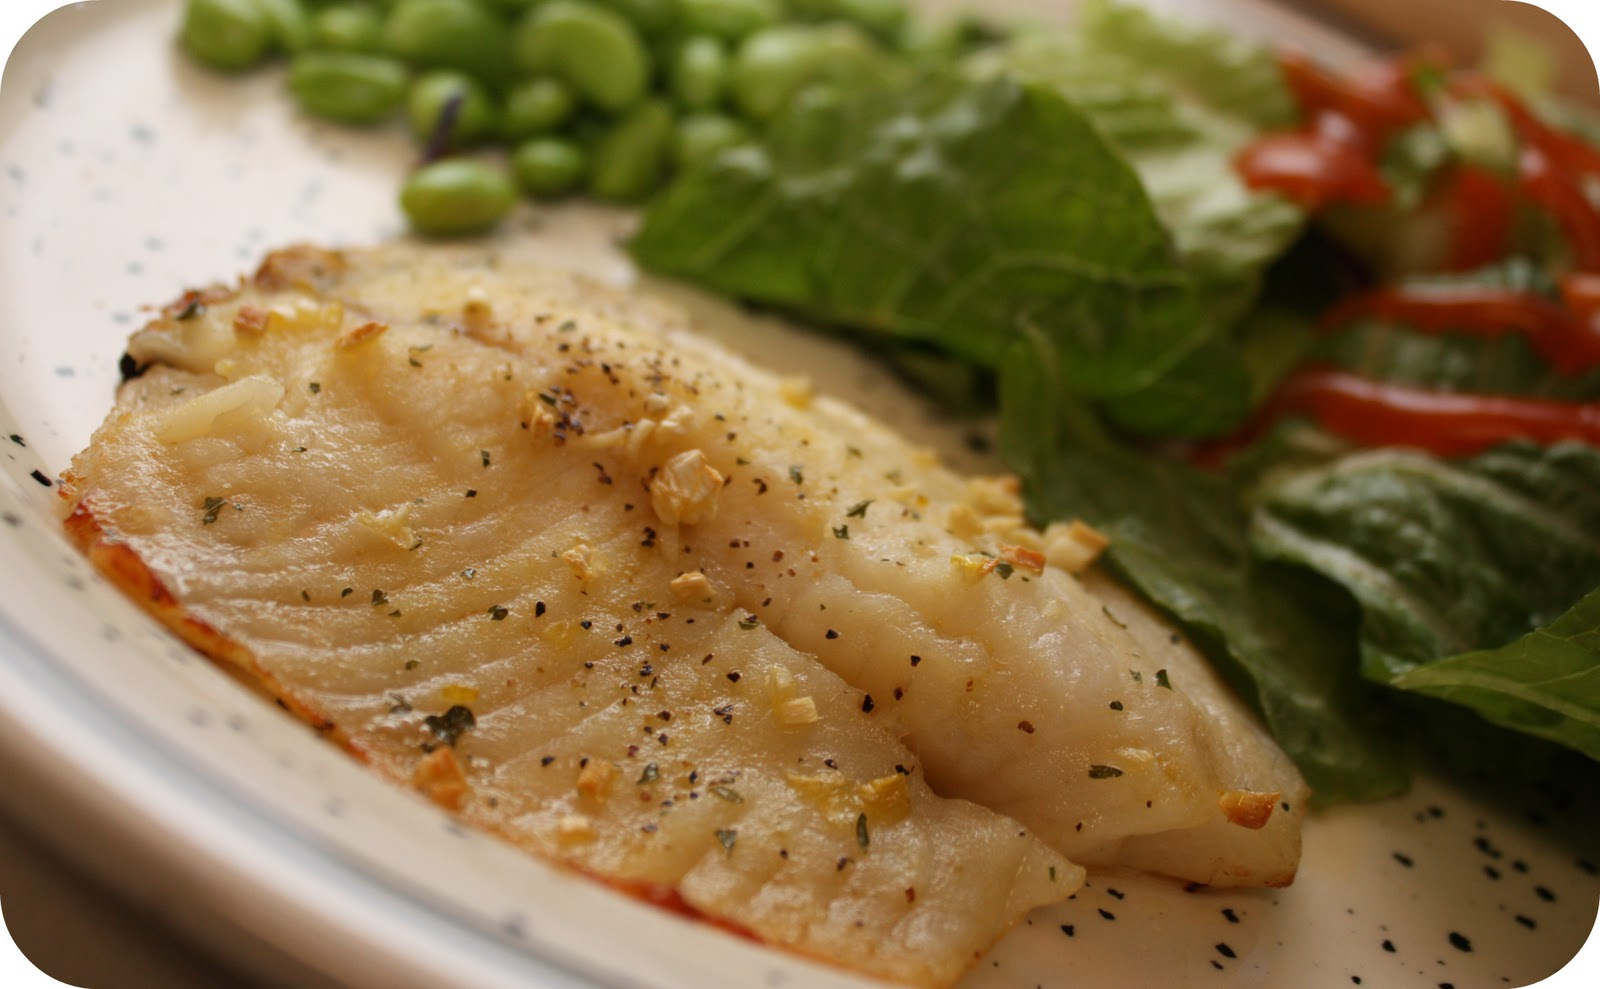 lemon garlic tilapia Lemon garlic baked tilapia is the easiest and tastiest way to get healthy fish onto the dinner plate cooking fish at home has never been easier.